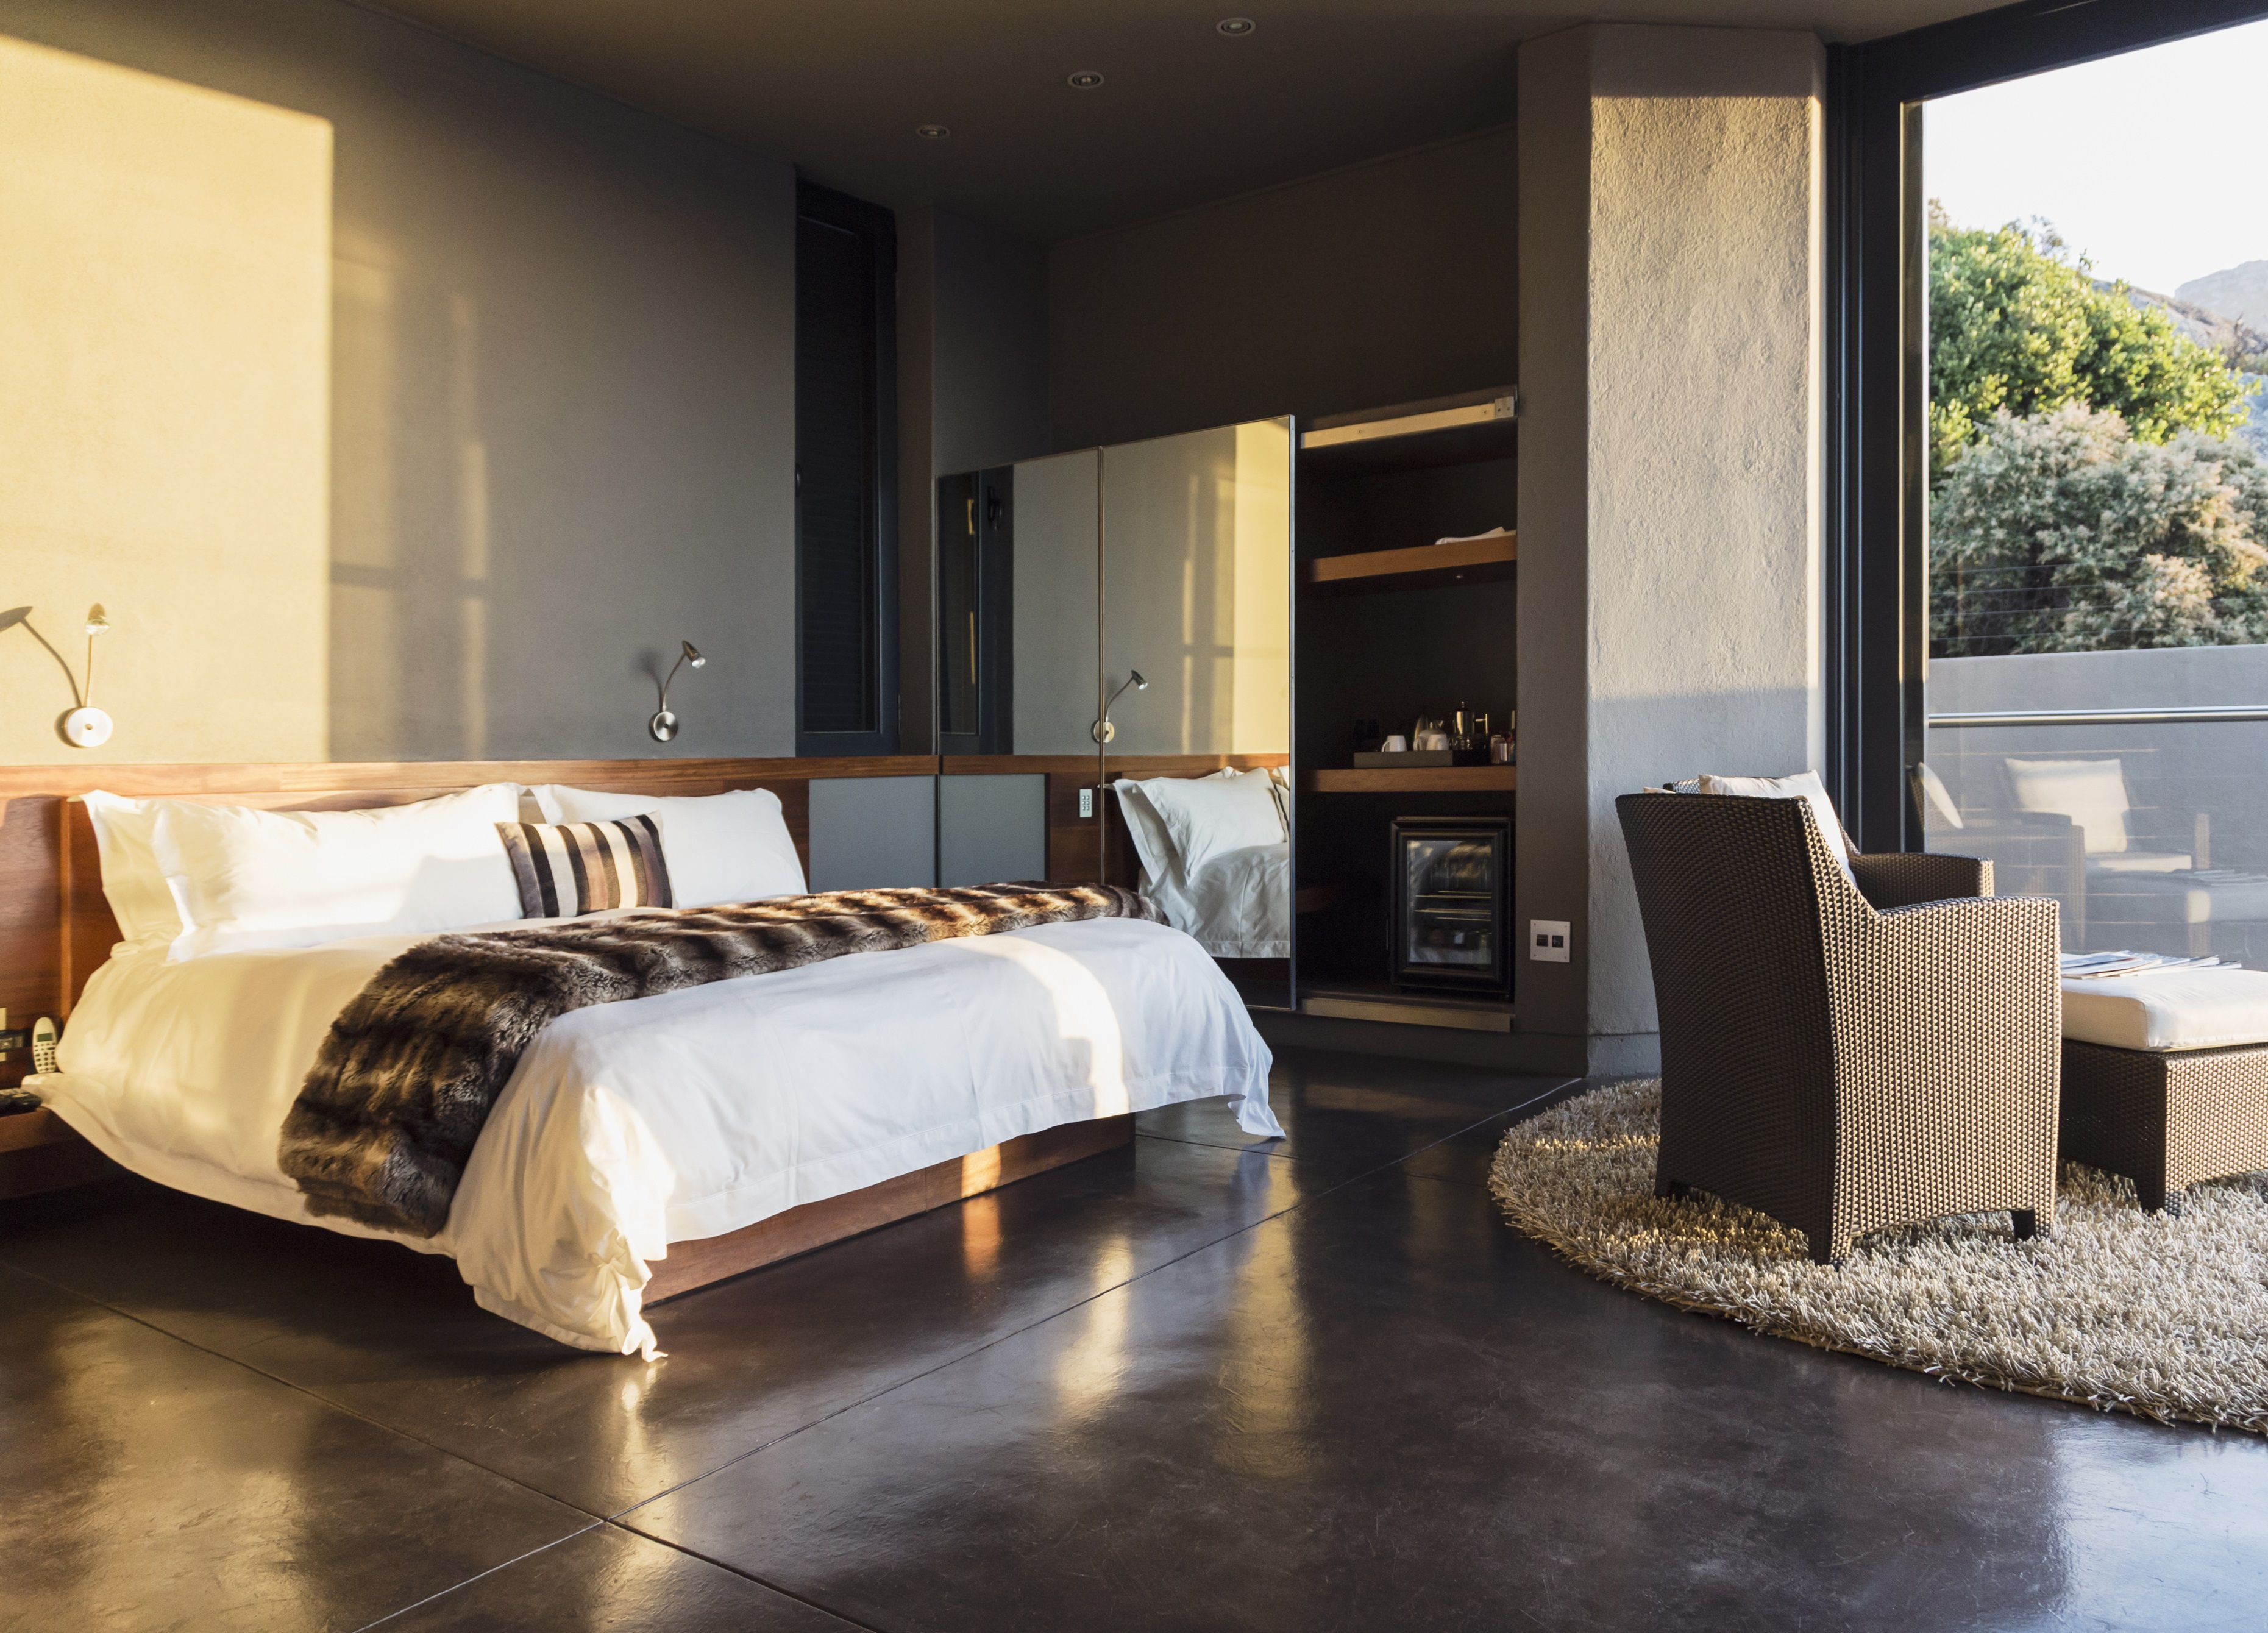 10 Contemporary Bedrooms To Inspire Your Home Decor